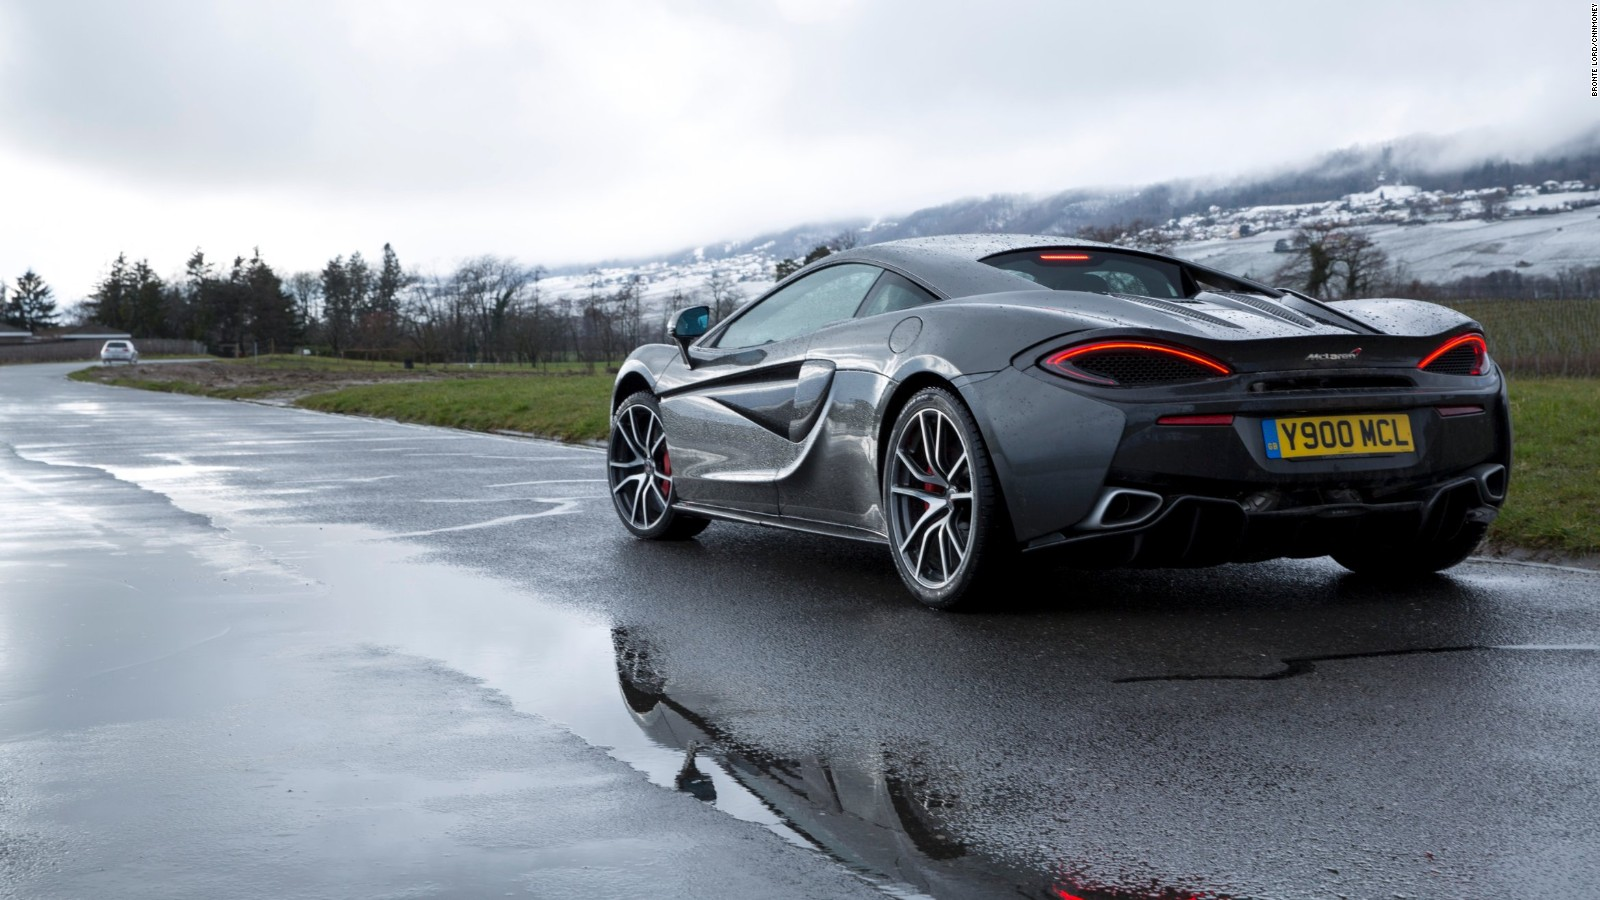 Mclaren How To Design An Affordable Supercar Cnn Style